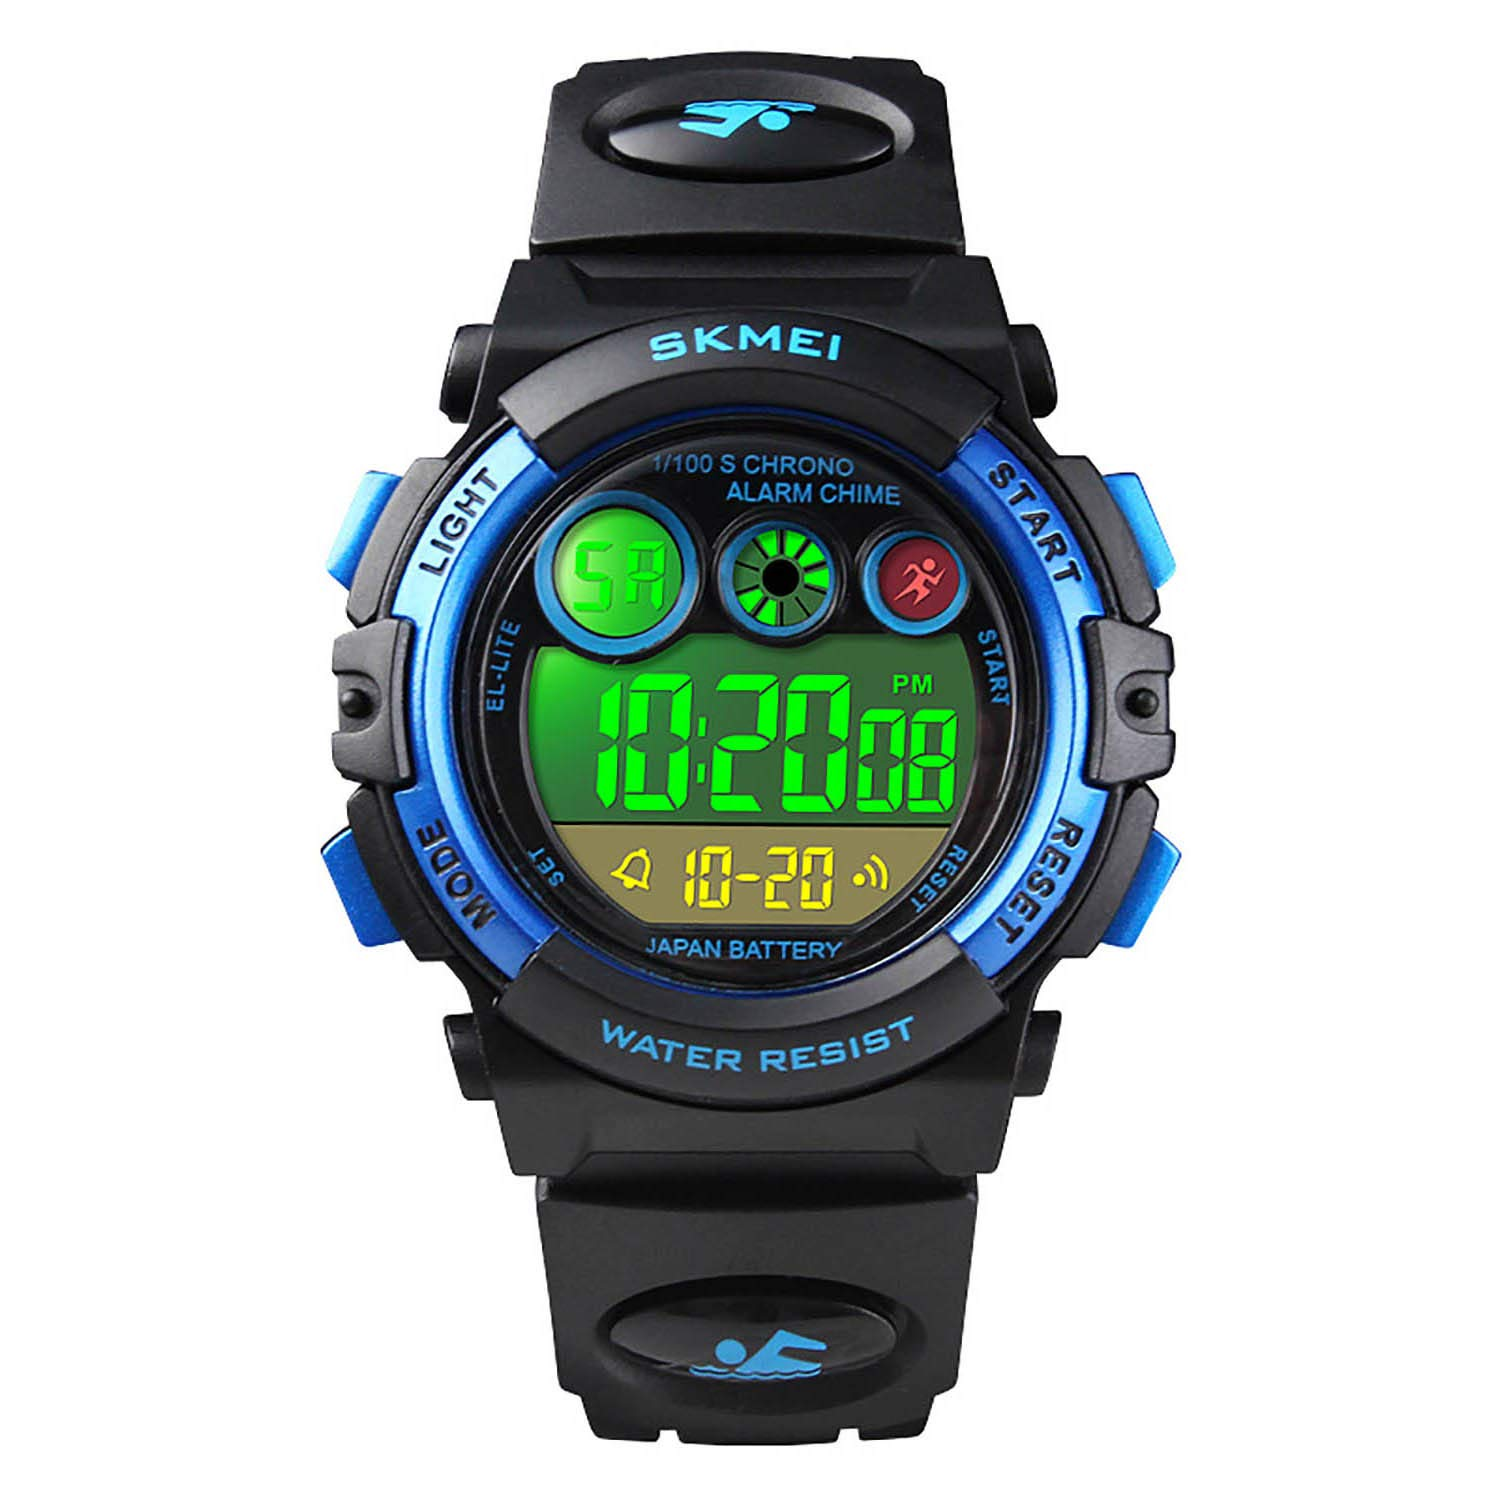 Boys Sport Digital Watch Kids Multifunction Outdoor Watches Waterproof Electronic Running Fashion Girls Watch with LED Alarm Clock Stopwatch Calendar Date - Blue by cofuo